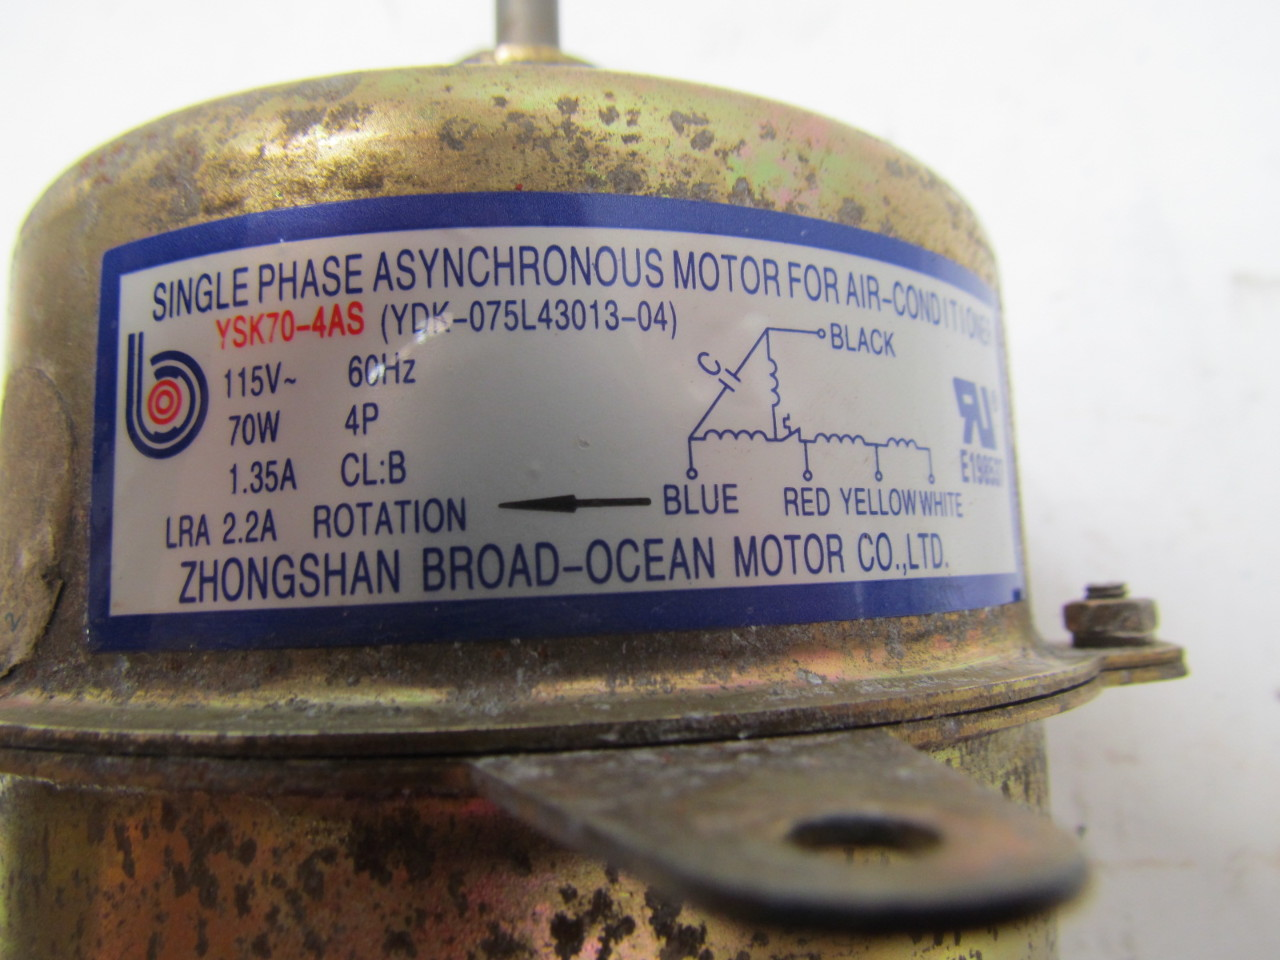 zhongshan broad ocean ysk70 4as 1ph asynchronous motor